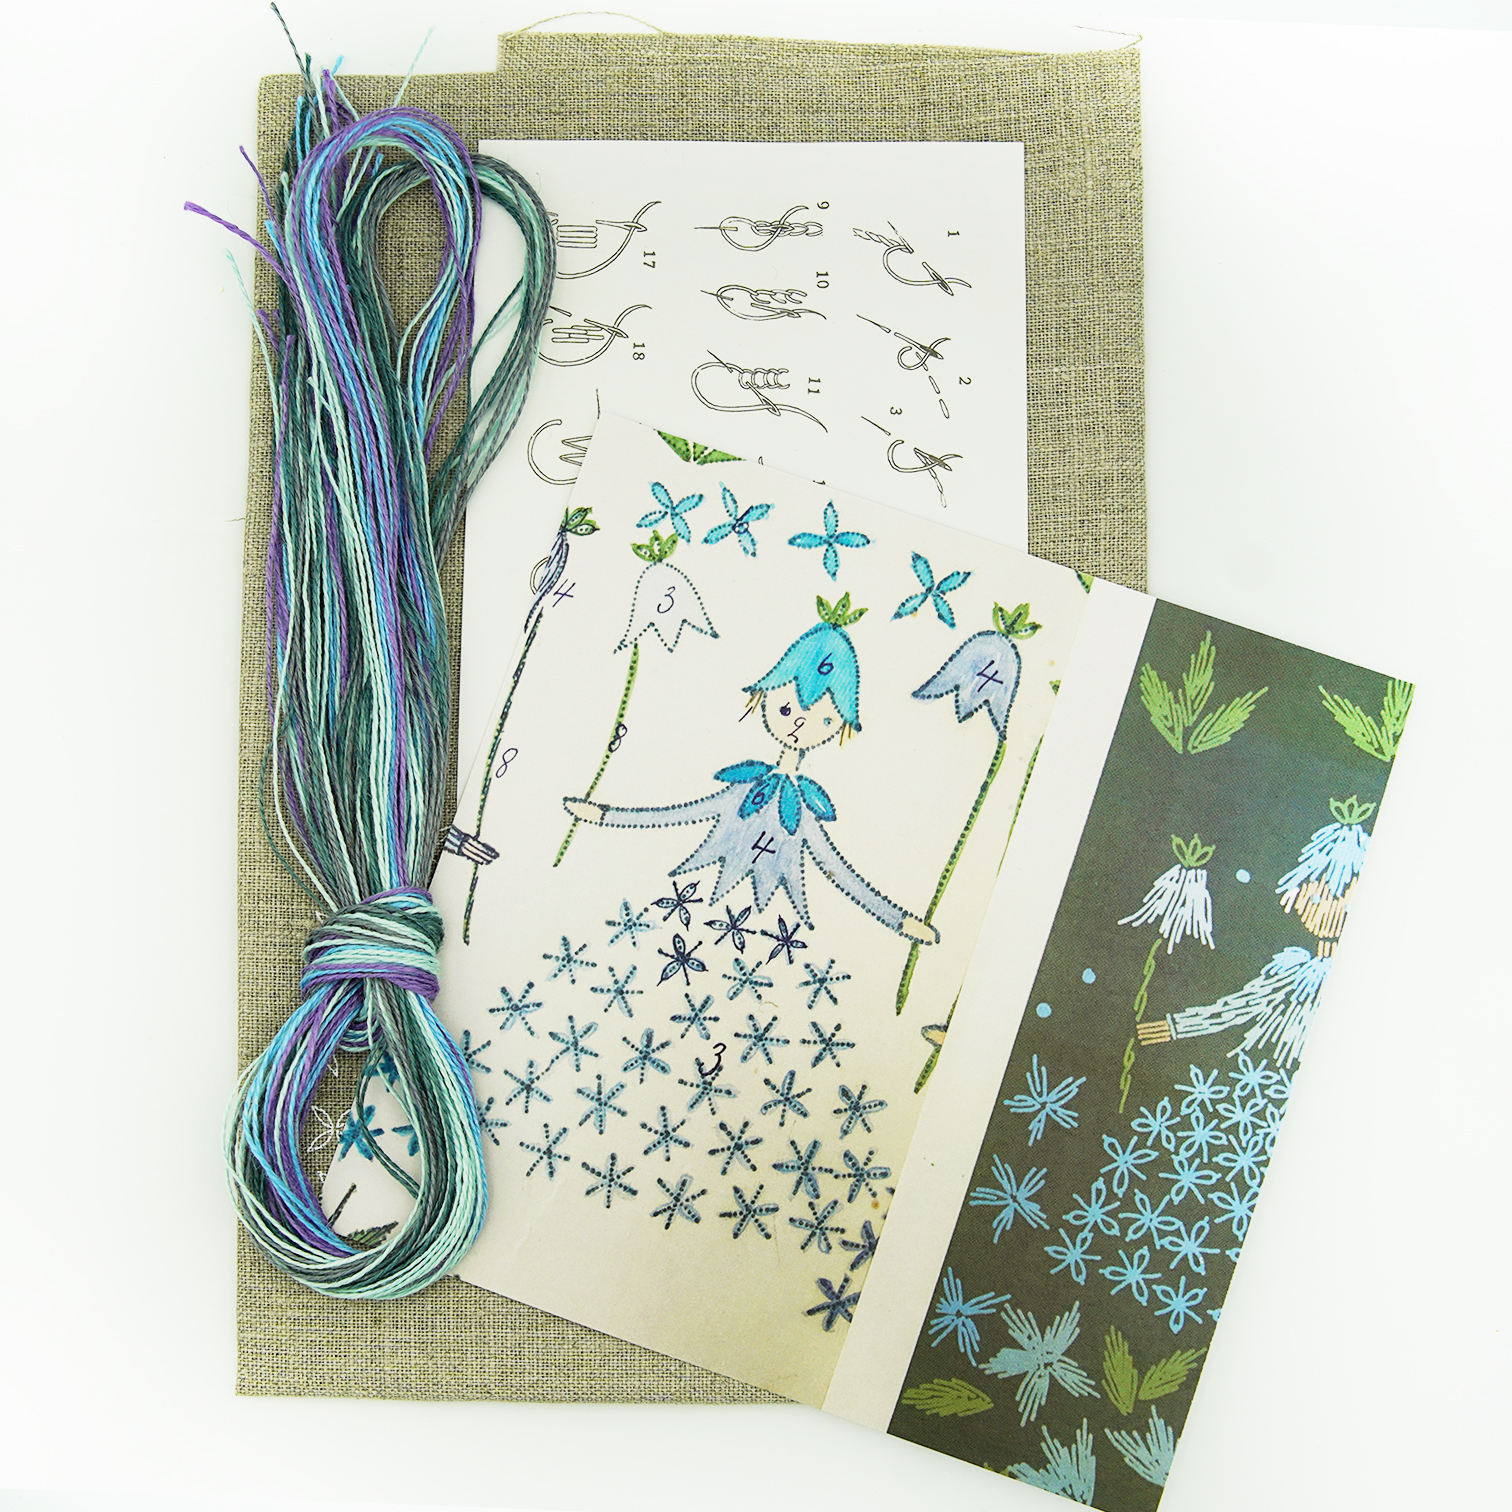 Linladan - Bluebell Girl - Swedish Embroidery Kit 136